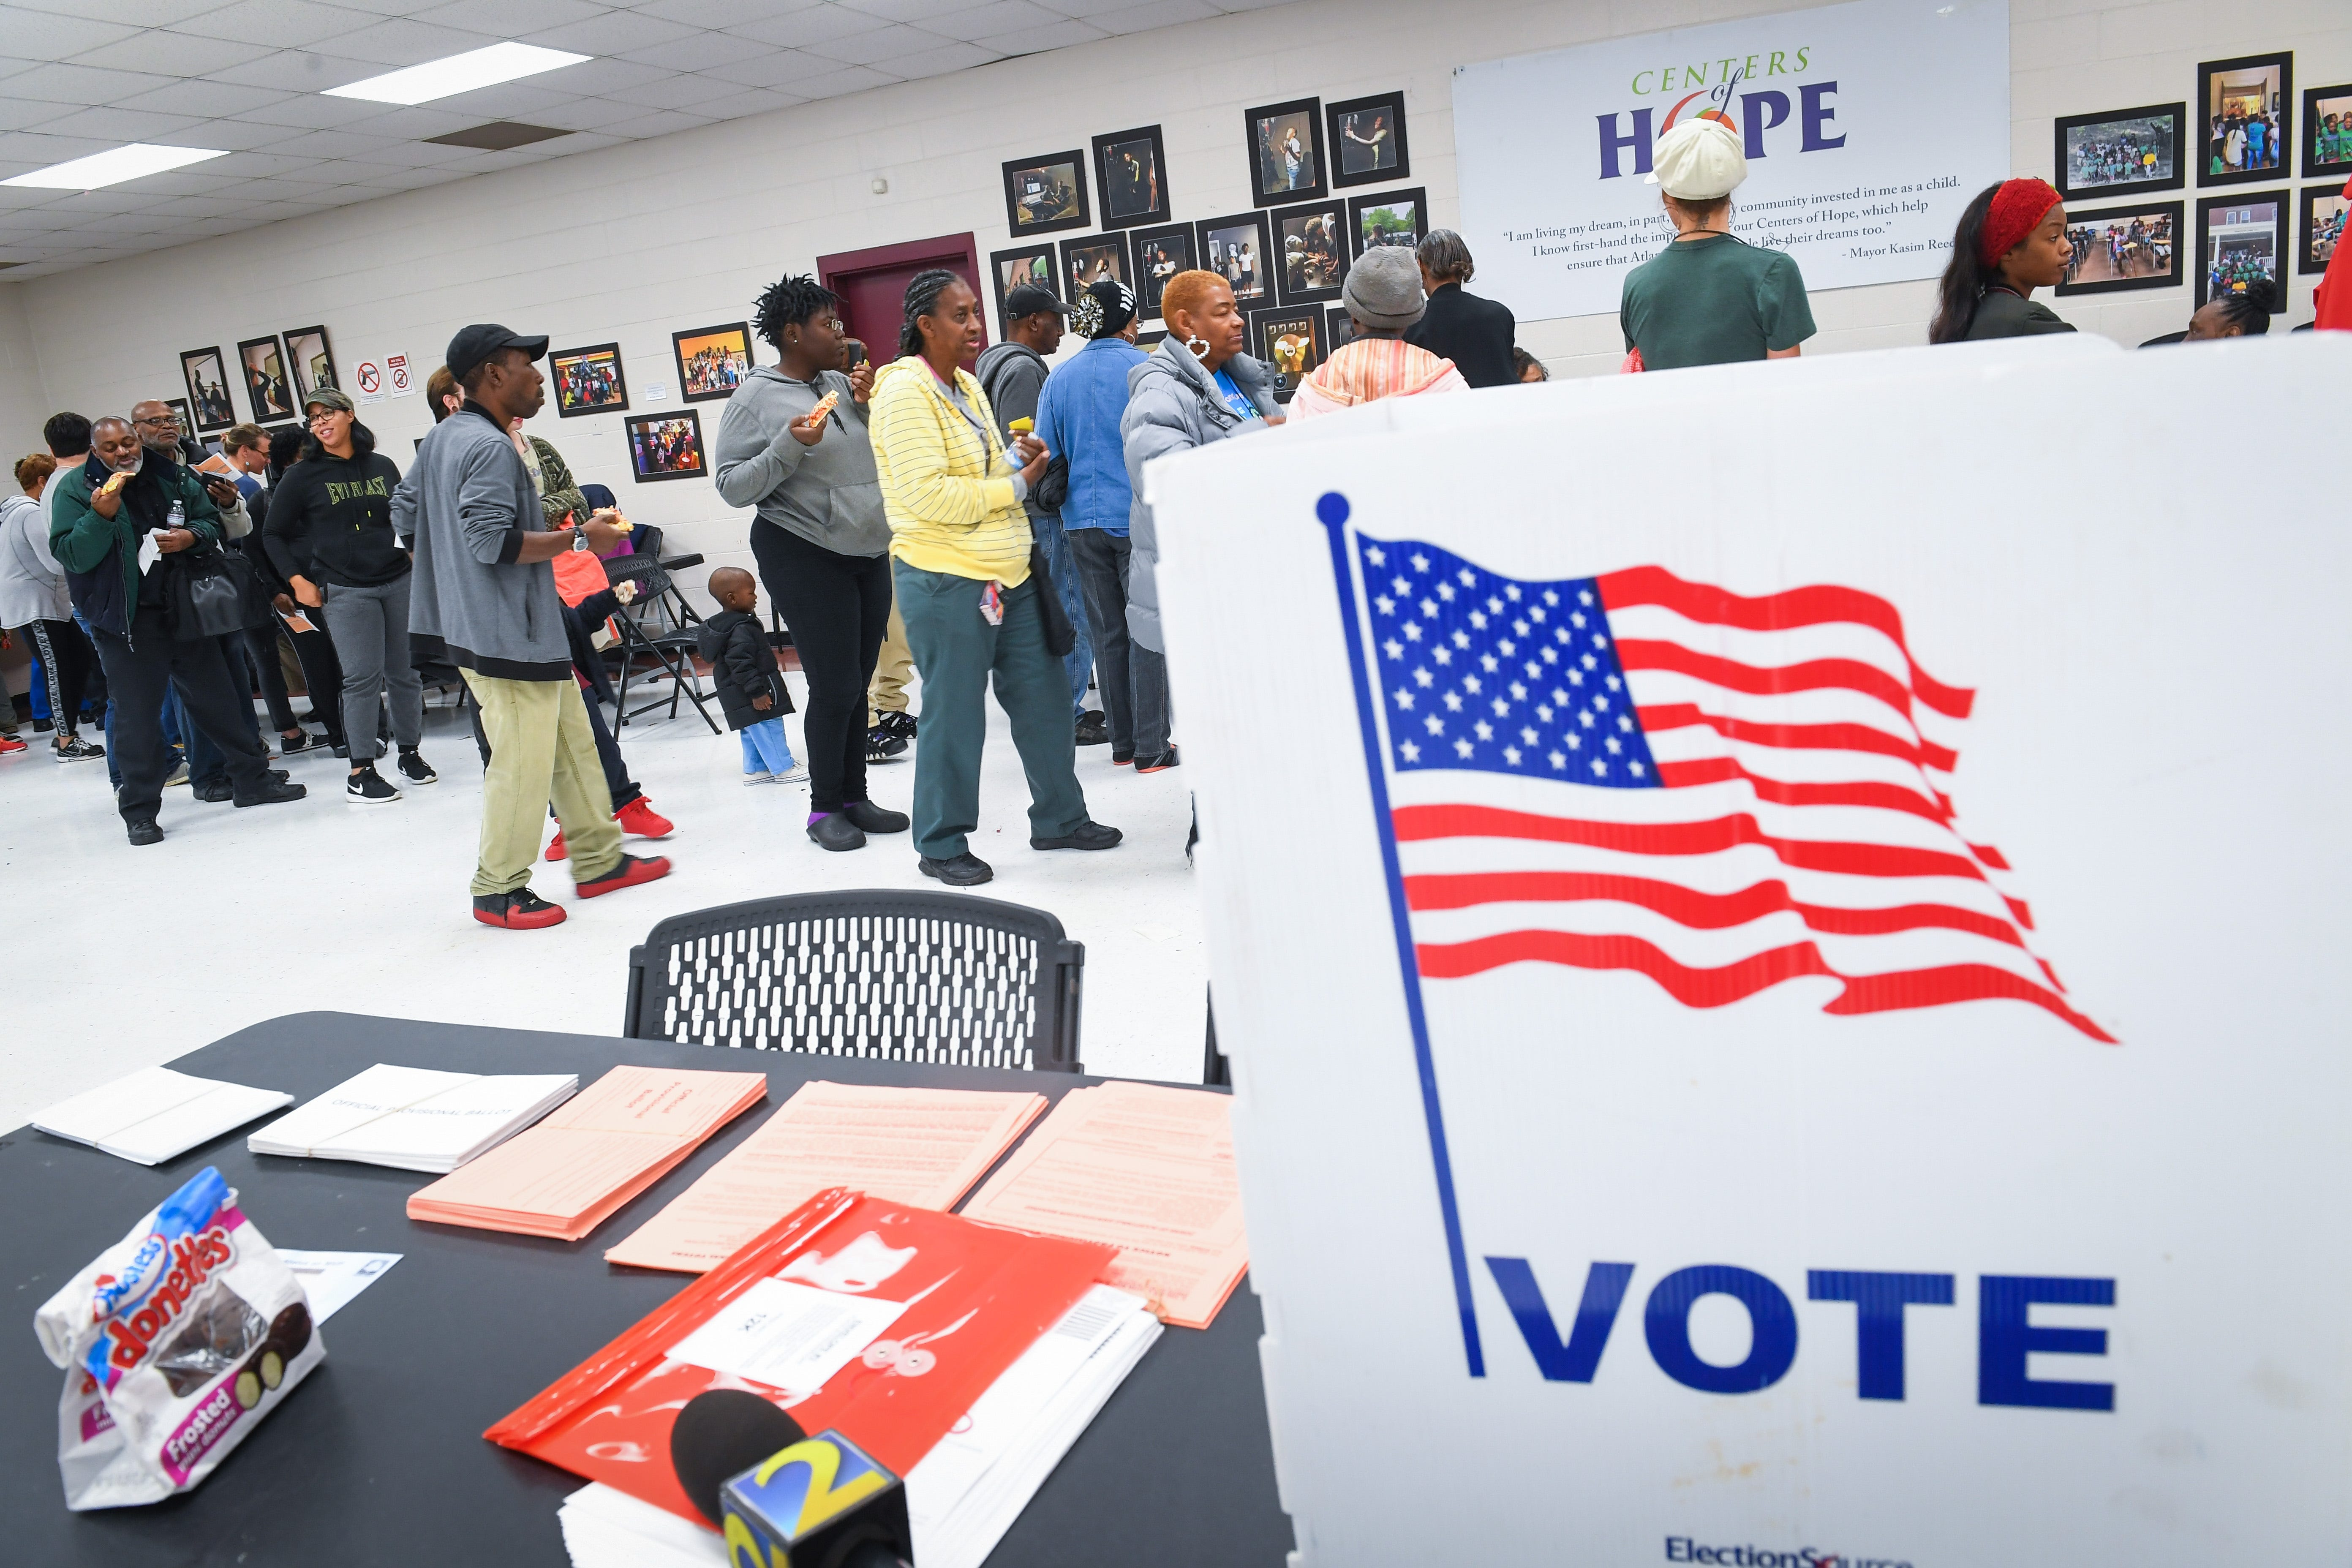 usatoday.com - Sherrilyn Ifill, Opinion contributor - Before 2020: Upgrade voting systems, restore Voting Rights Act, end voter suppression